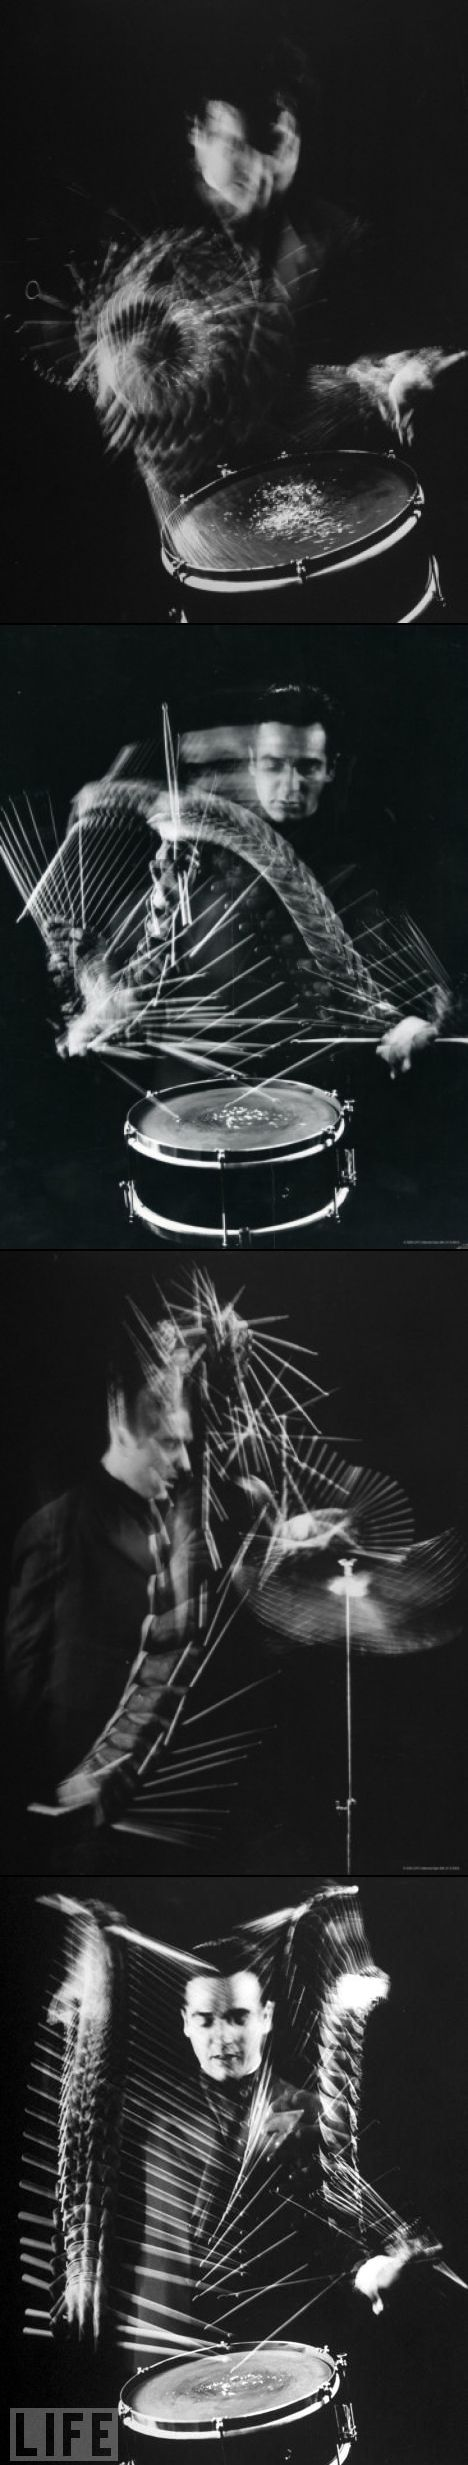 this is an example of long exposure and fast shutter speed, it captures a series of movements in one picture. It is also a helpful technique when working with dancers and musicians. The equipment needed for this is a camera, spare batteries and lenses.